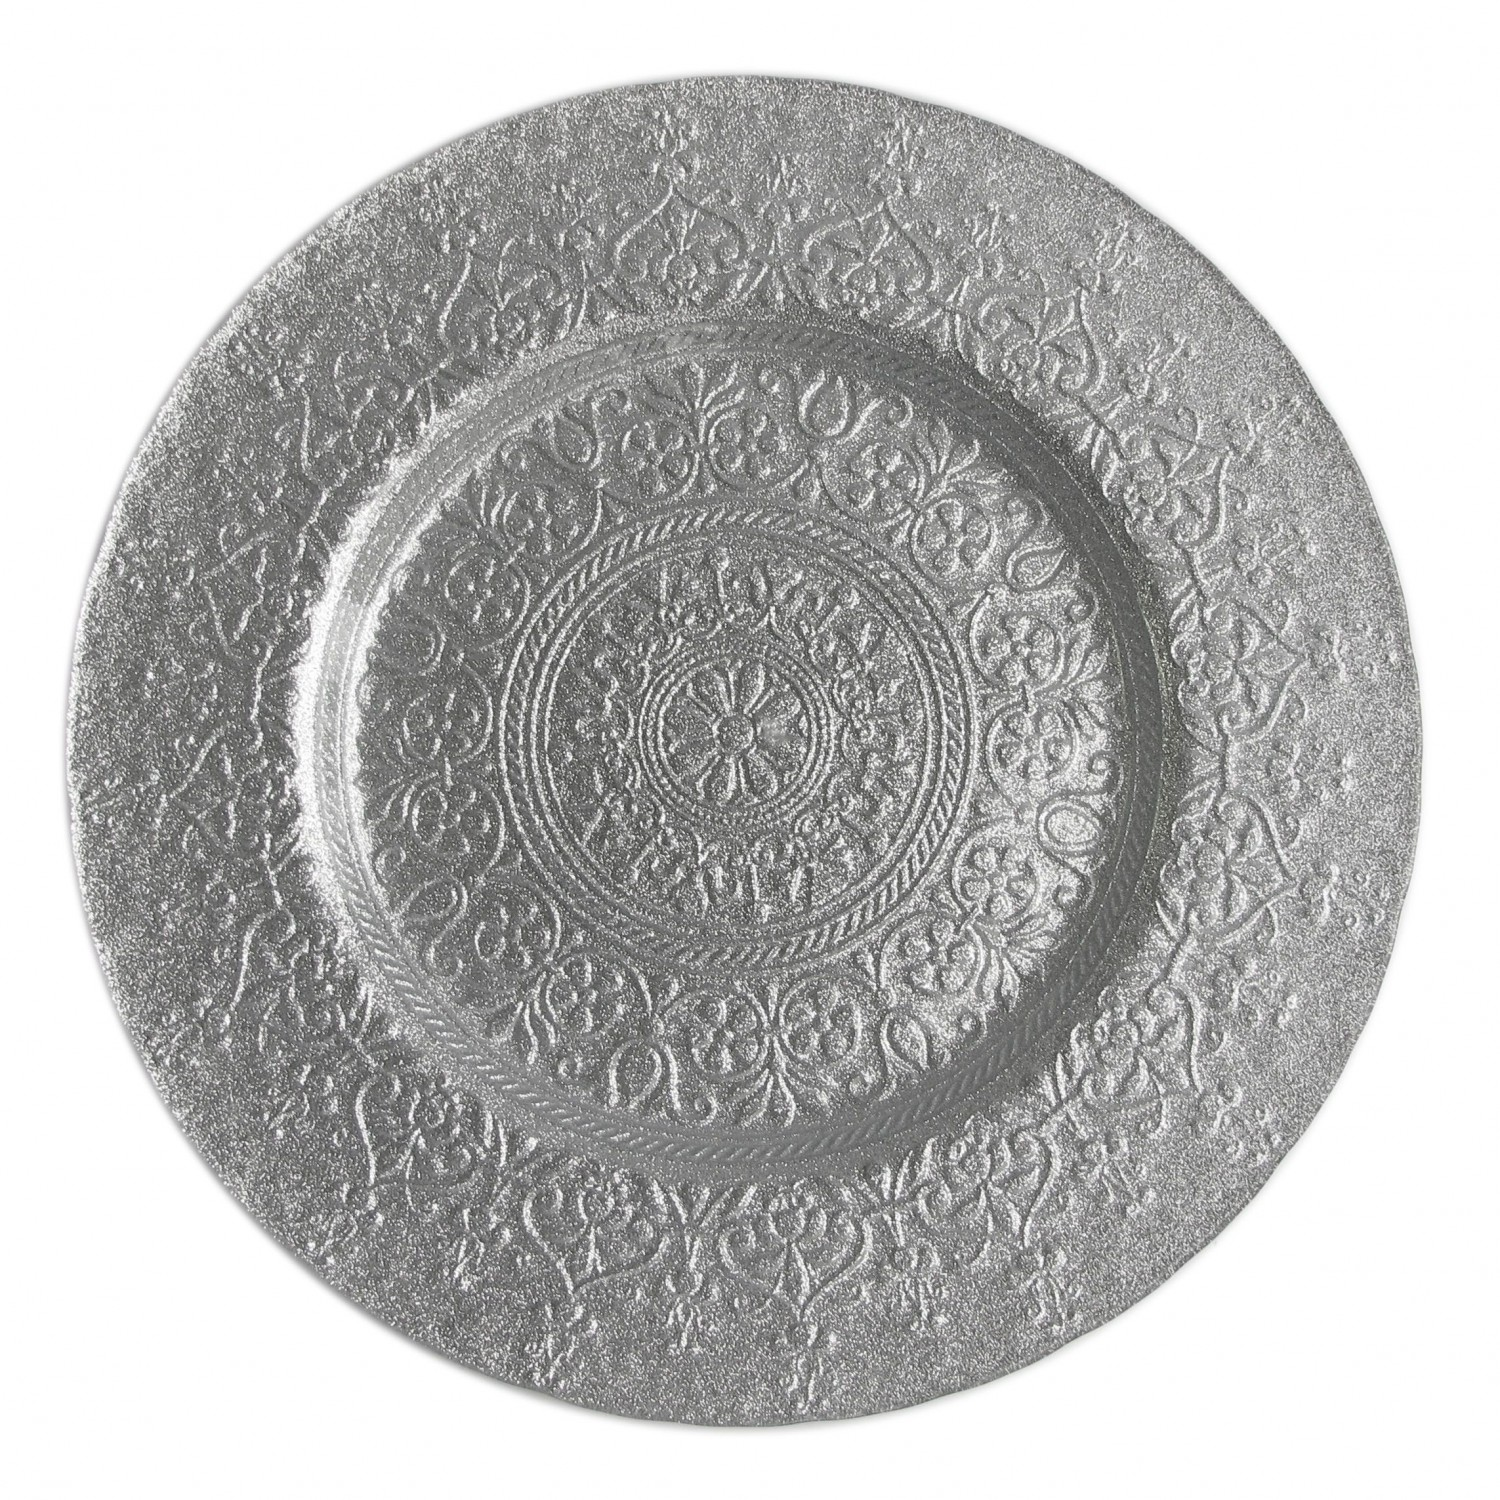 The Jay Companies 1900048 Round Alinea Silver Glass Charger Plate 13""